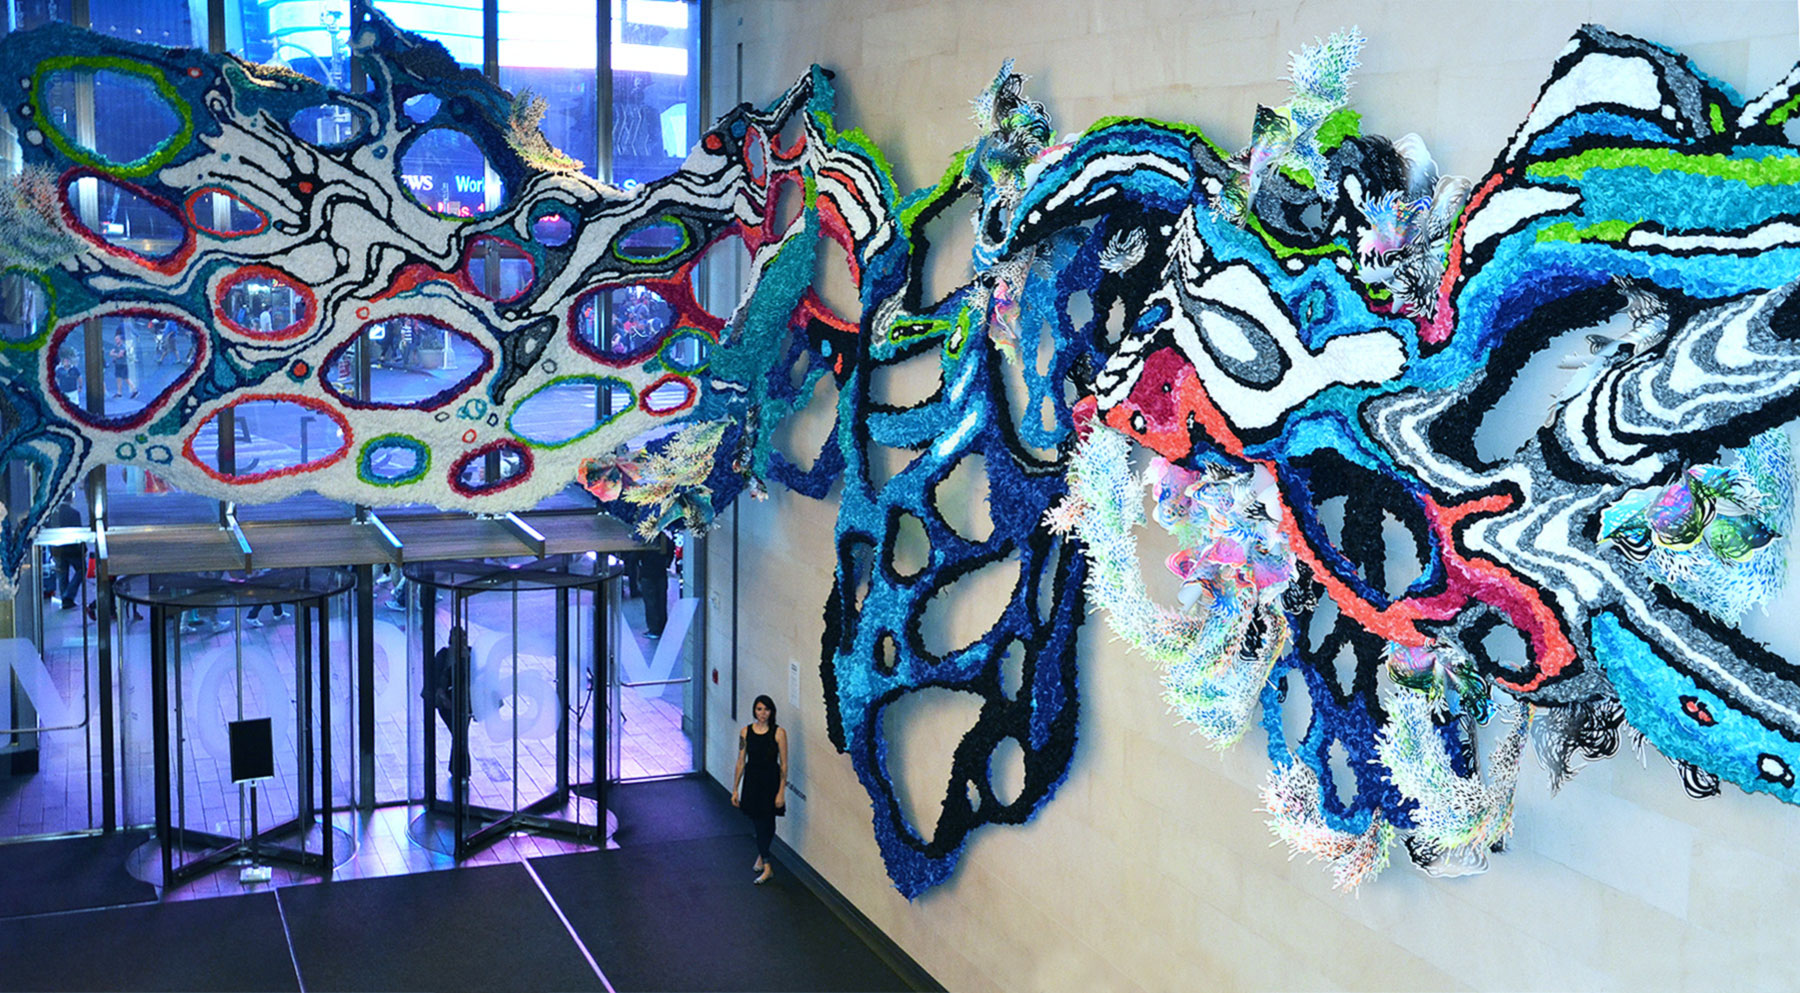 Viacom commissioned Crystal Wagner ('08) for a multipiece exhibit at its New York City headquarters in 2015